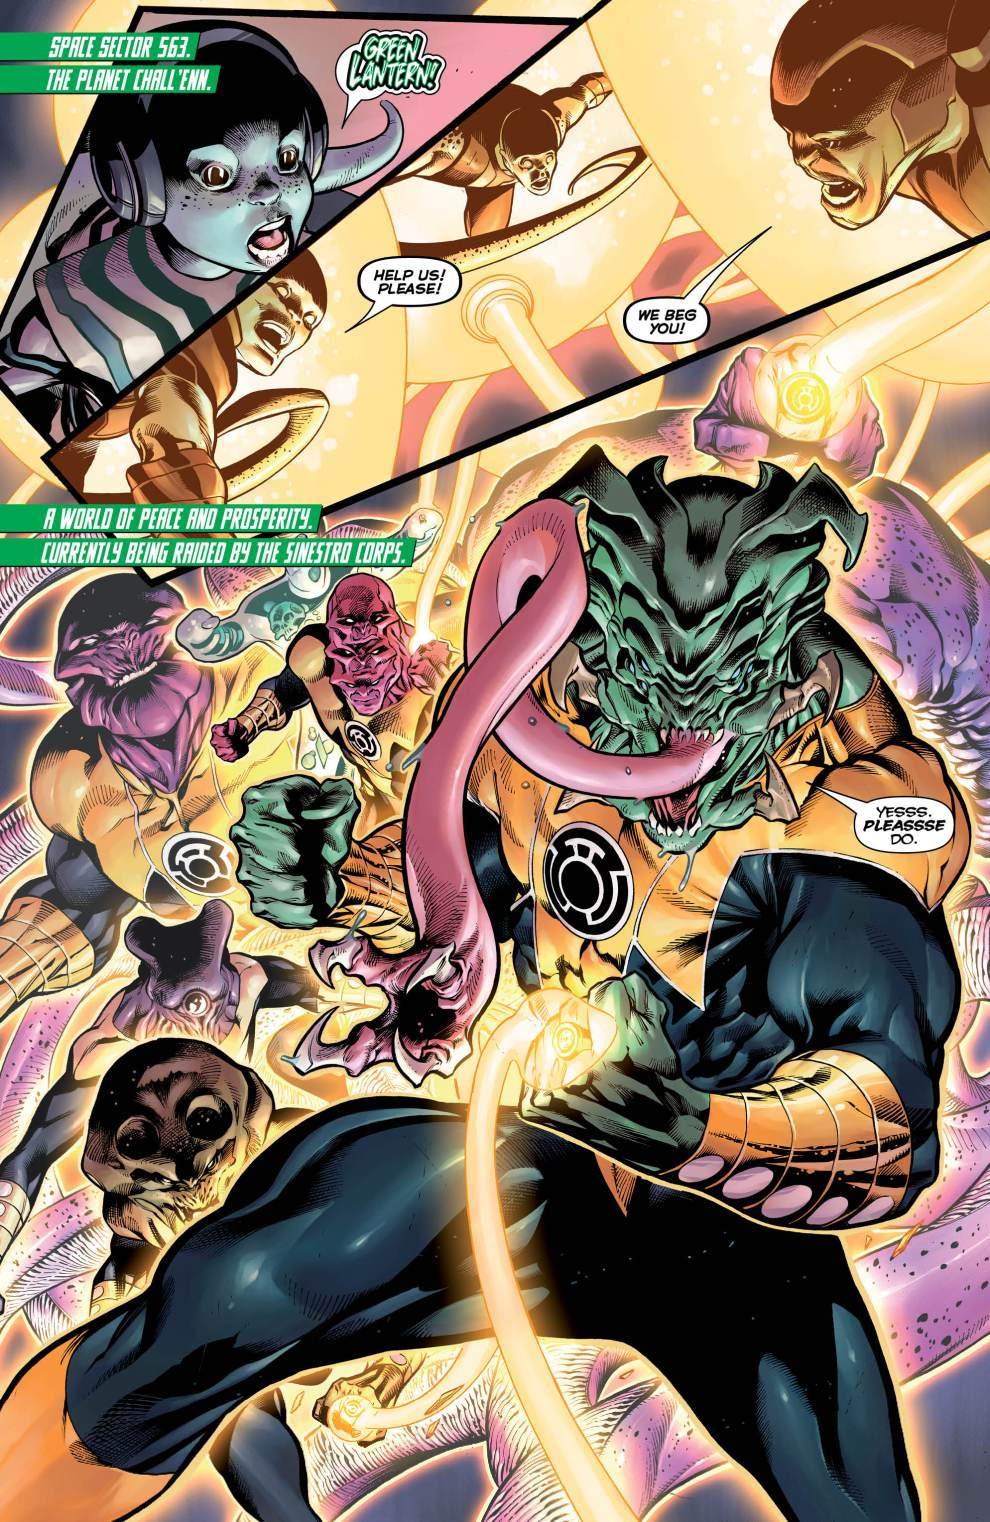 Images from Hal Jordan and the Green Lantern Corps #3. Courtesy of DC Comics.